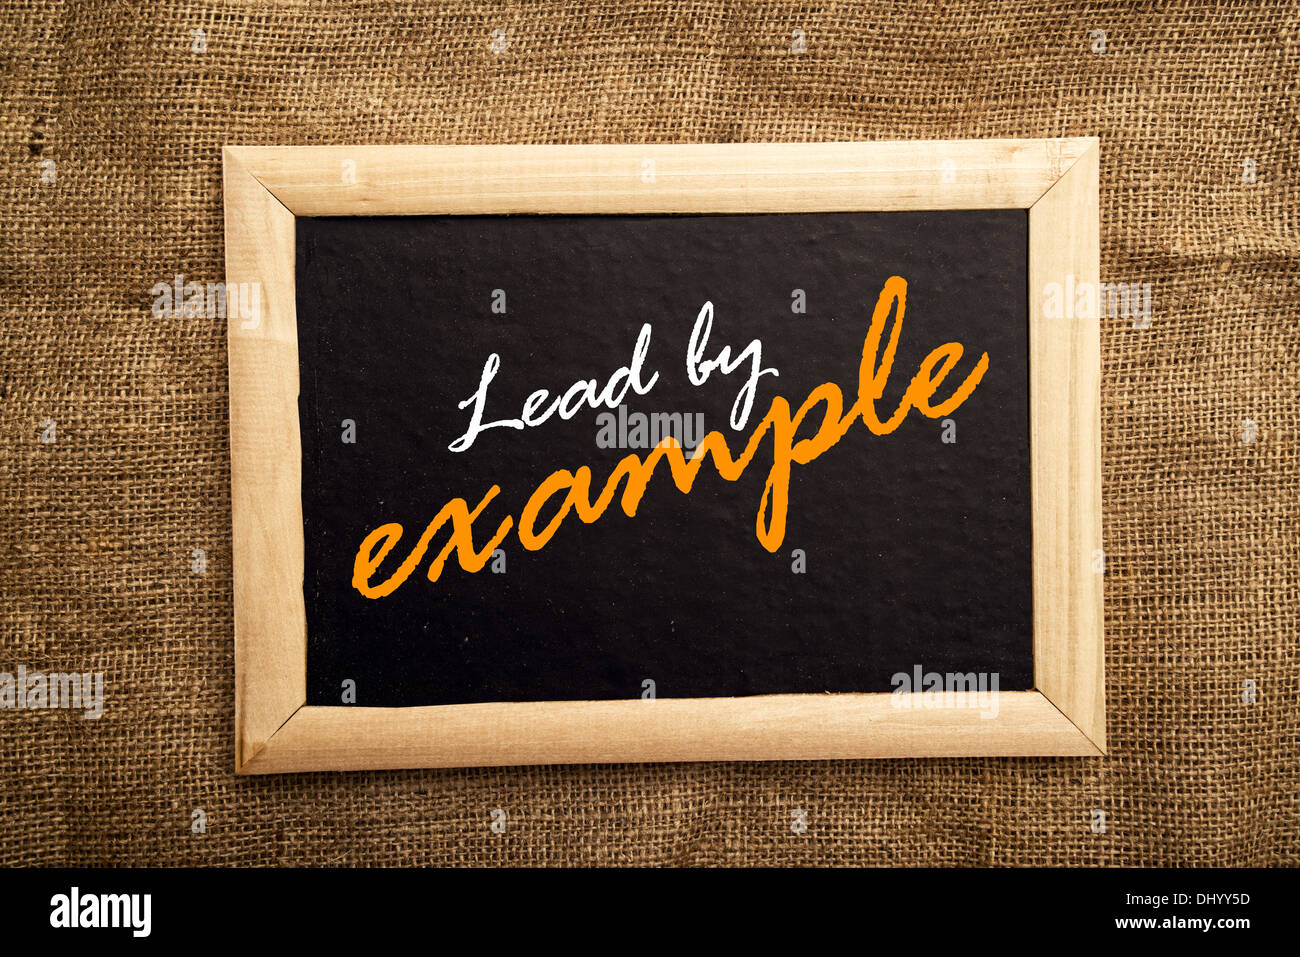 Lead By Example Stock Photos Lead By Example Stock Images Alamy